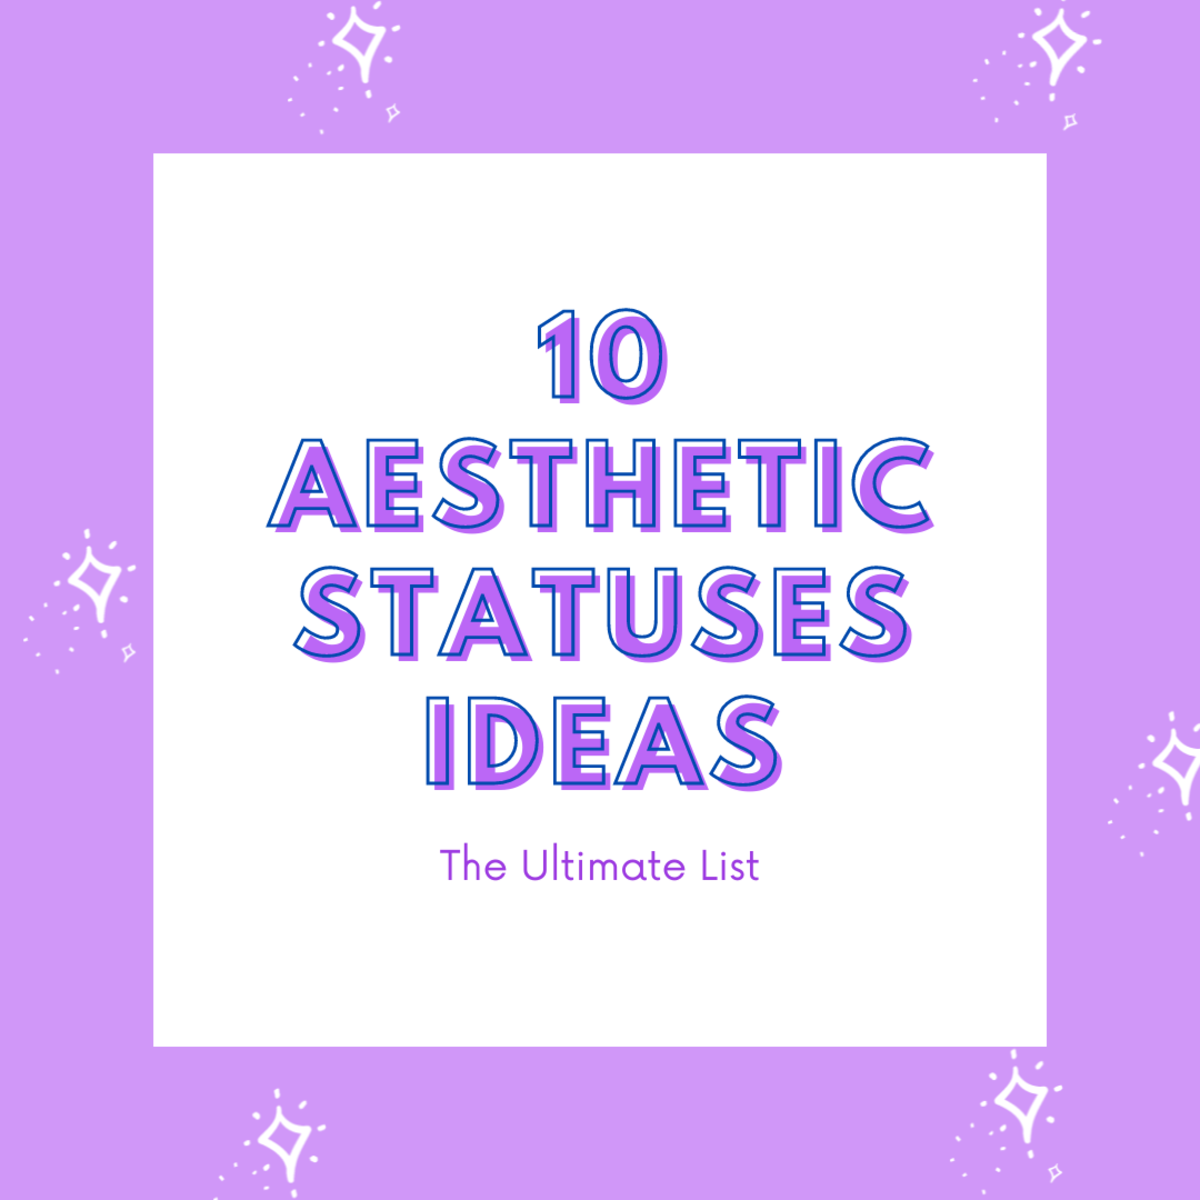 In this guide, we're going to take a look at 10 aesthetic status ideas!